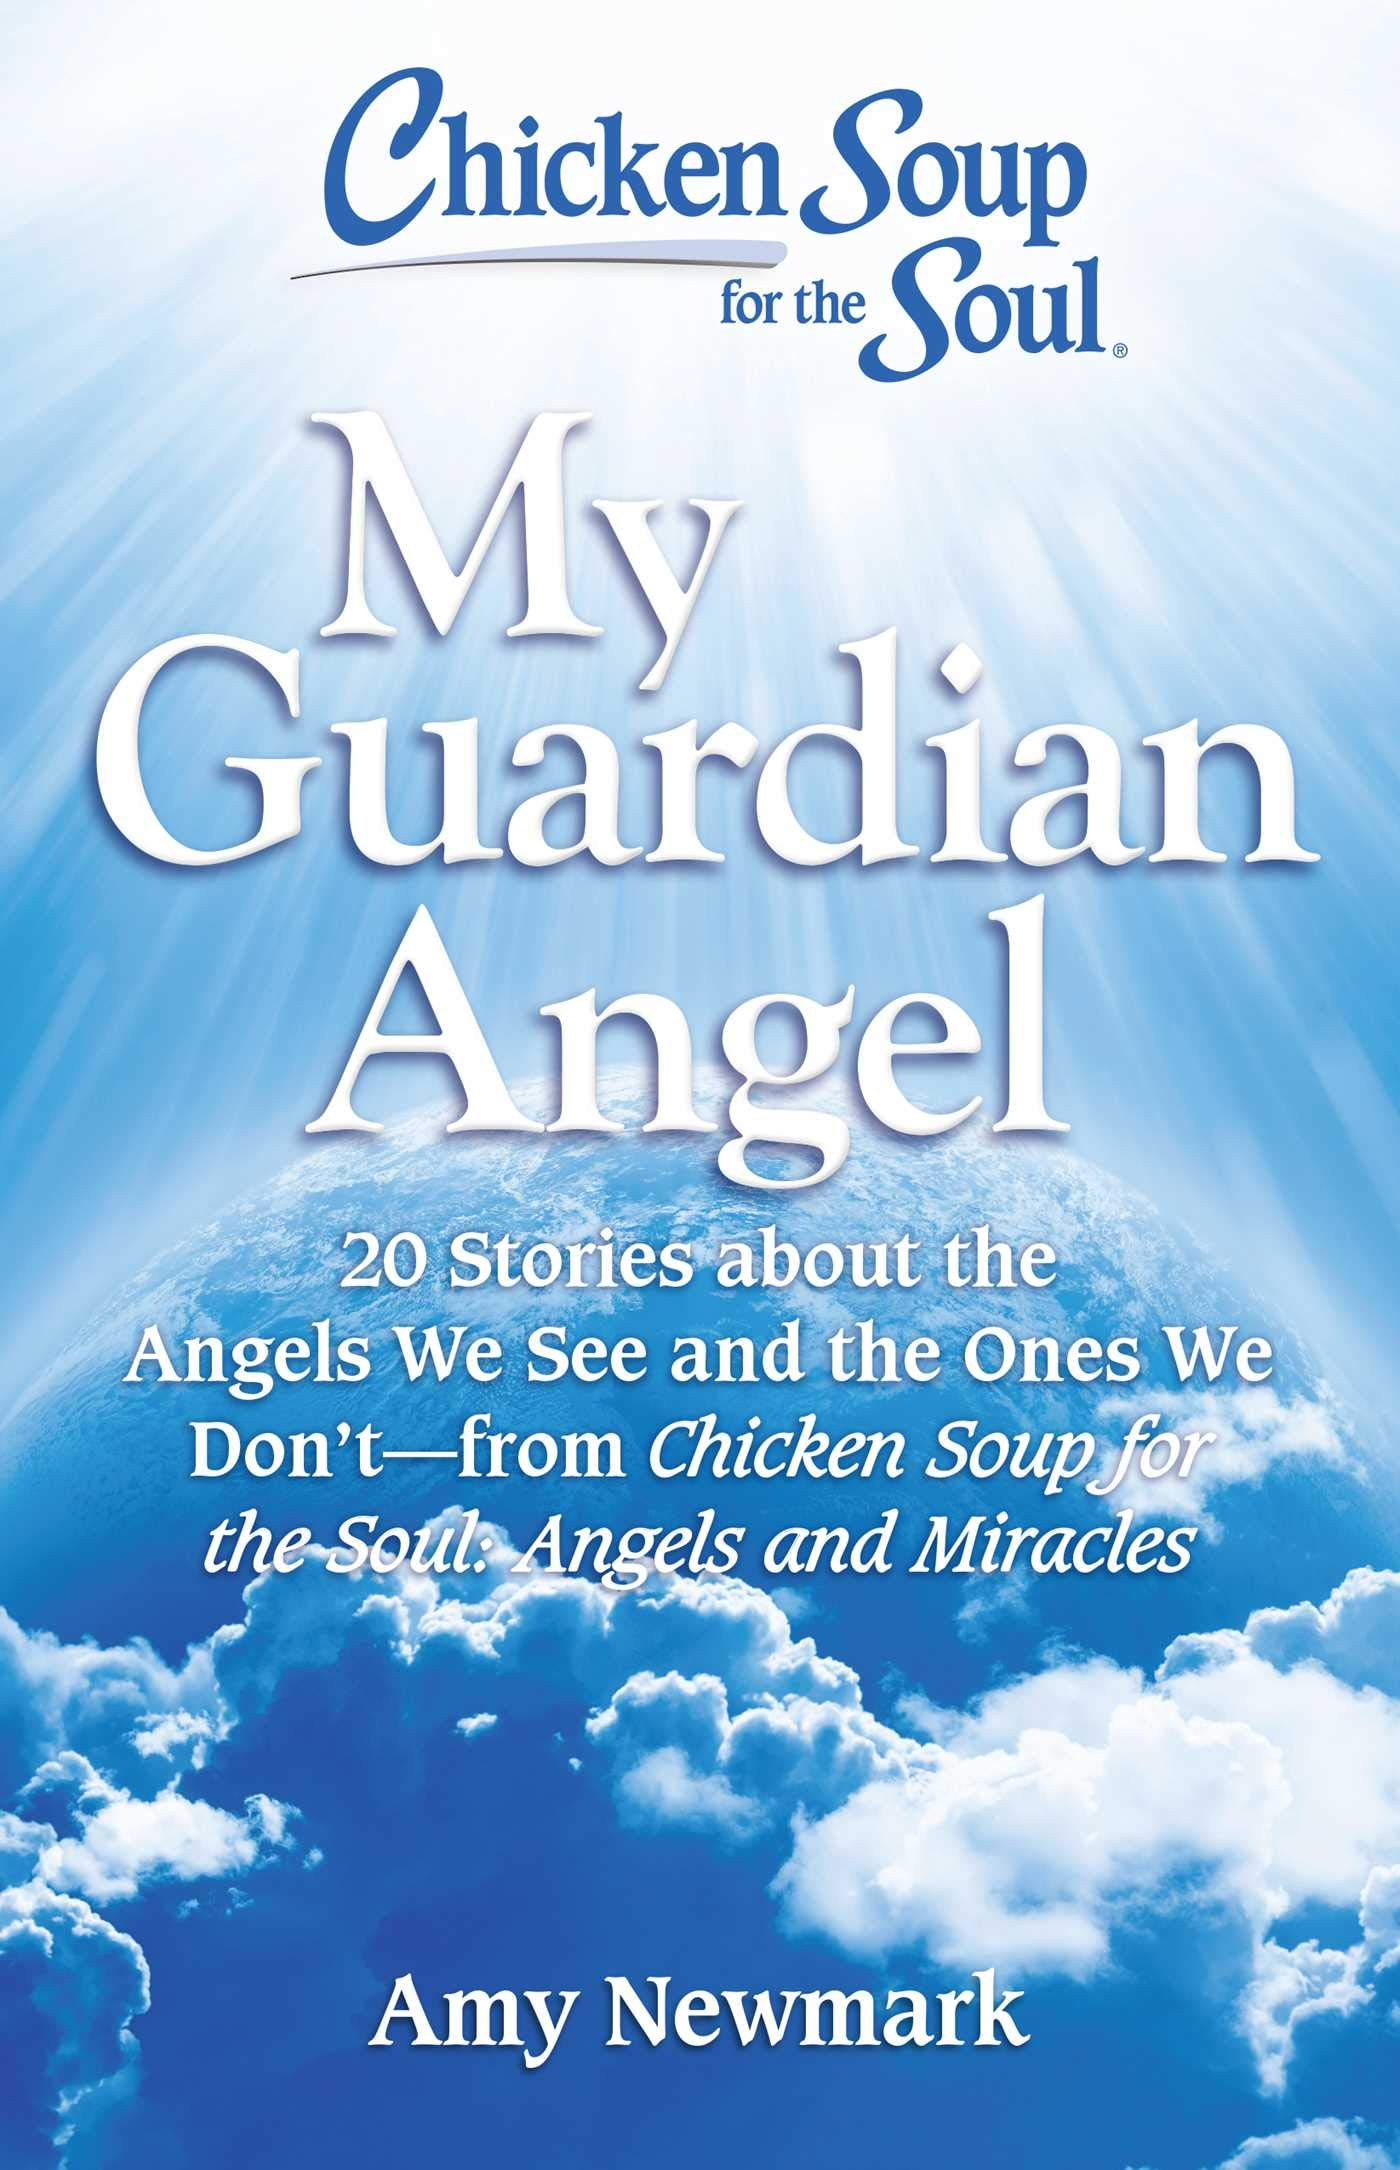 Chicken Soup for the Soul: My Guardian Angel: 20 Stories About the Angels We See and the Ones We Don't - from Chicken Soup for the Soul Angels and Miracles